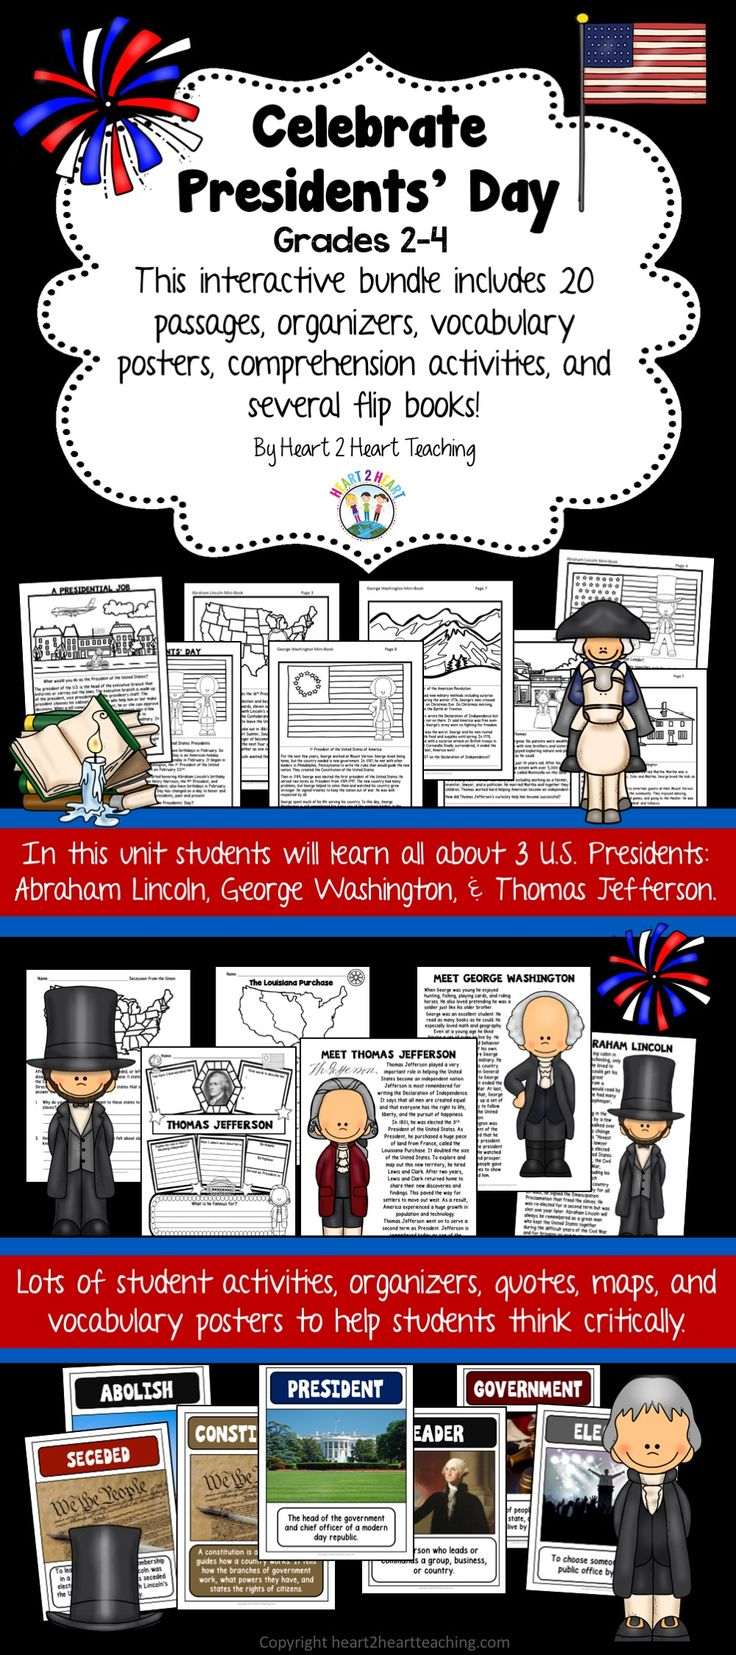 Learning about Presidents' Day has never been so much fun! With this creative activity pack students will love learning all about George Washington, Abraham Lincoln, Thomas Jefferson, and all about president's job in honor of all United States Presidents!